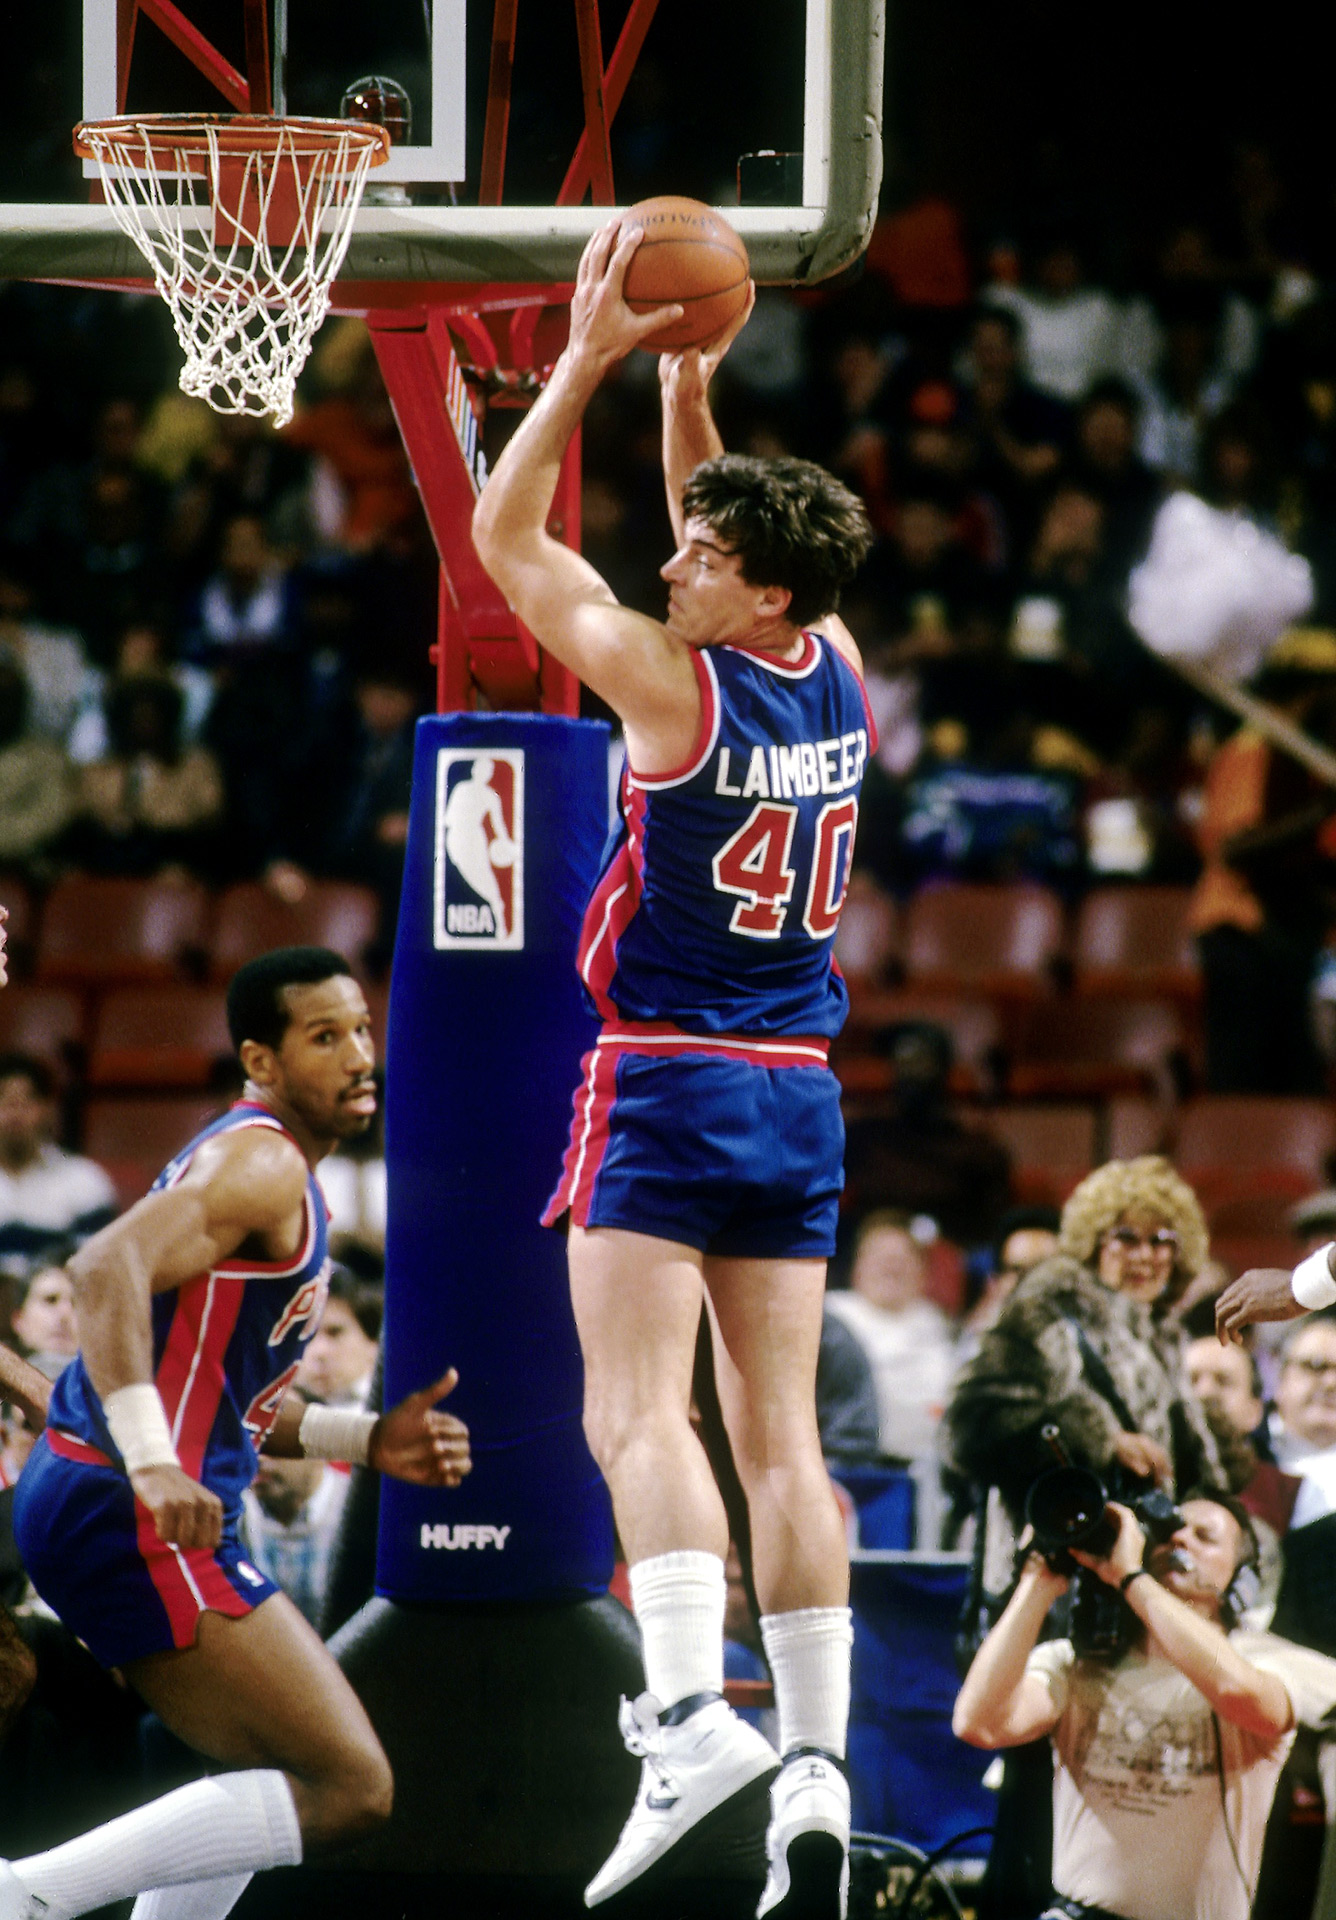 Bill Laimbeer: Pursuing Perfection